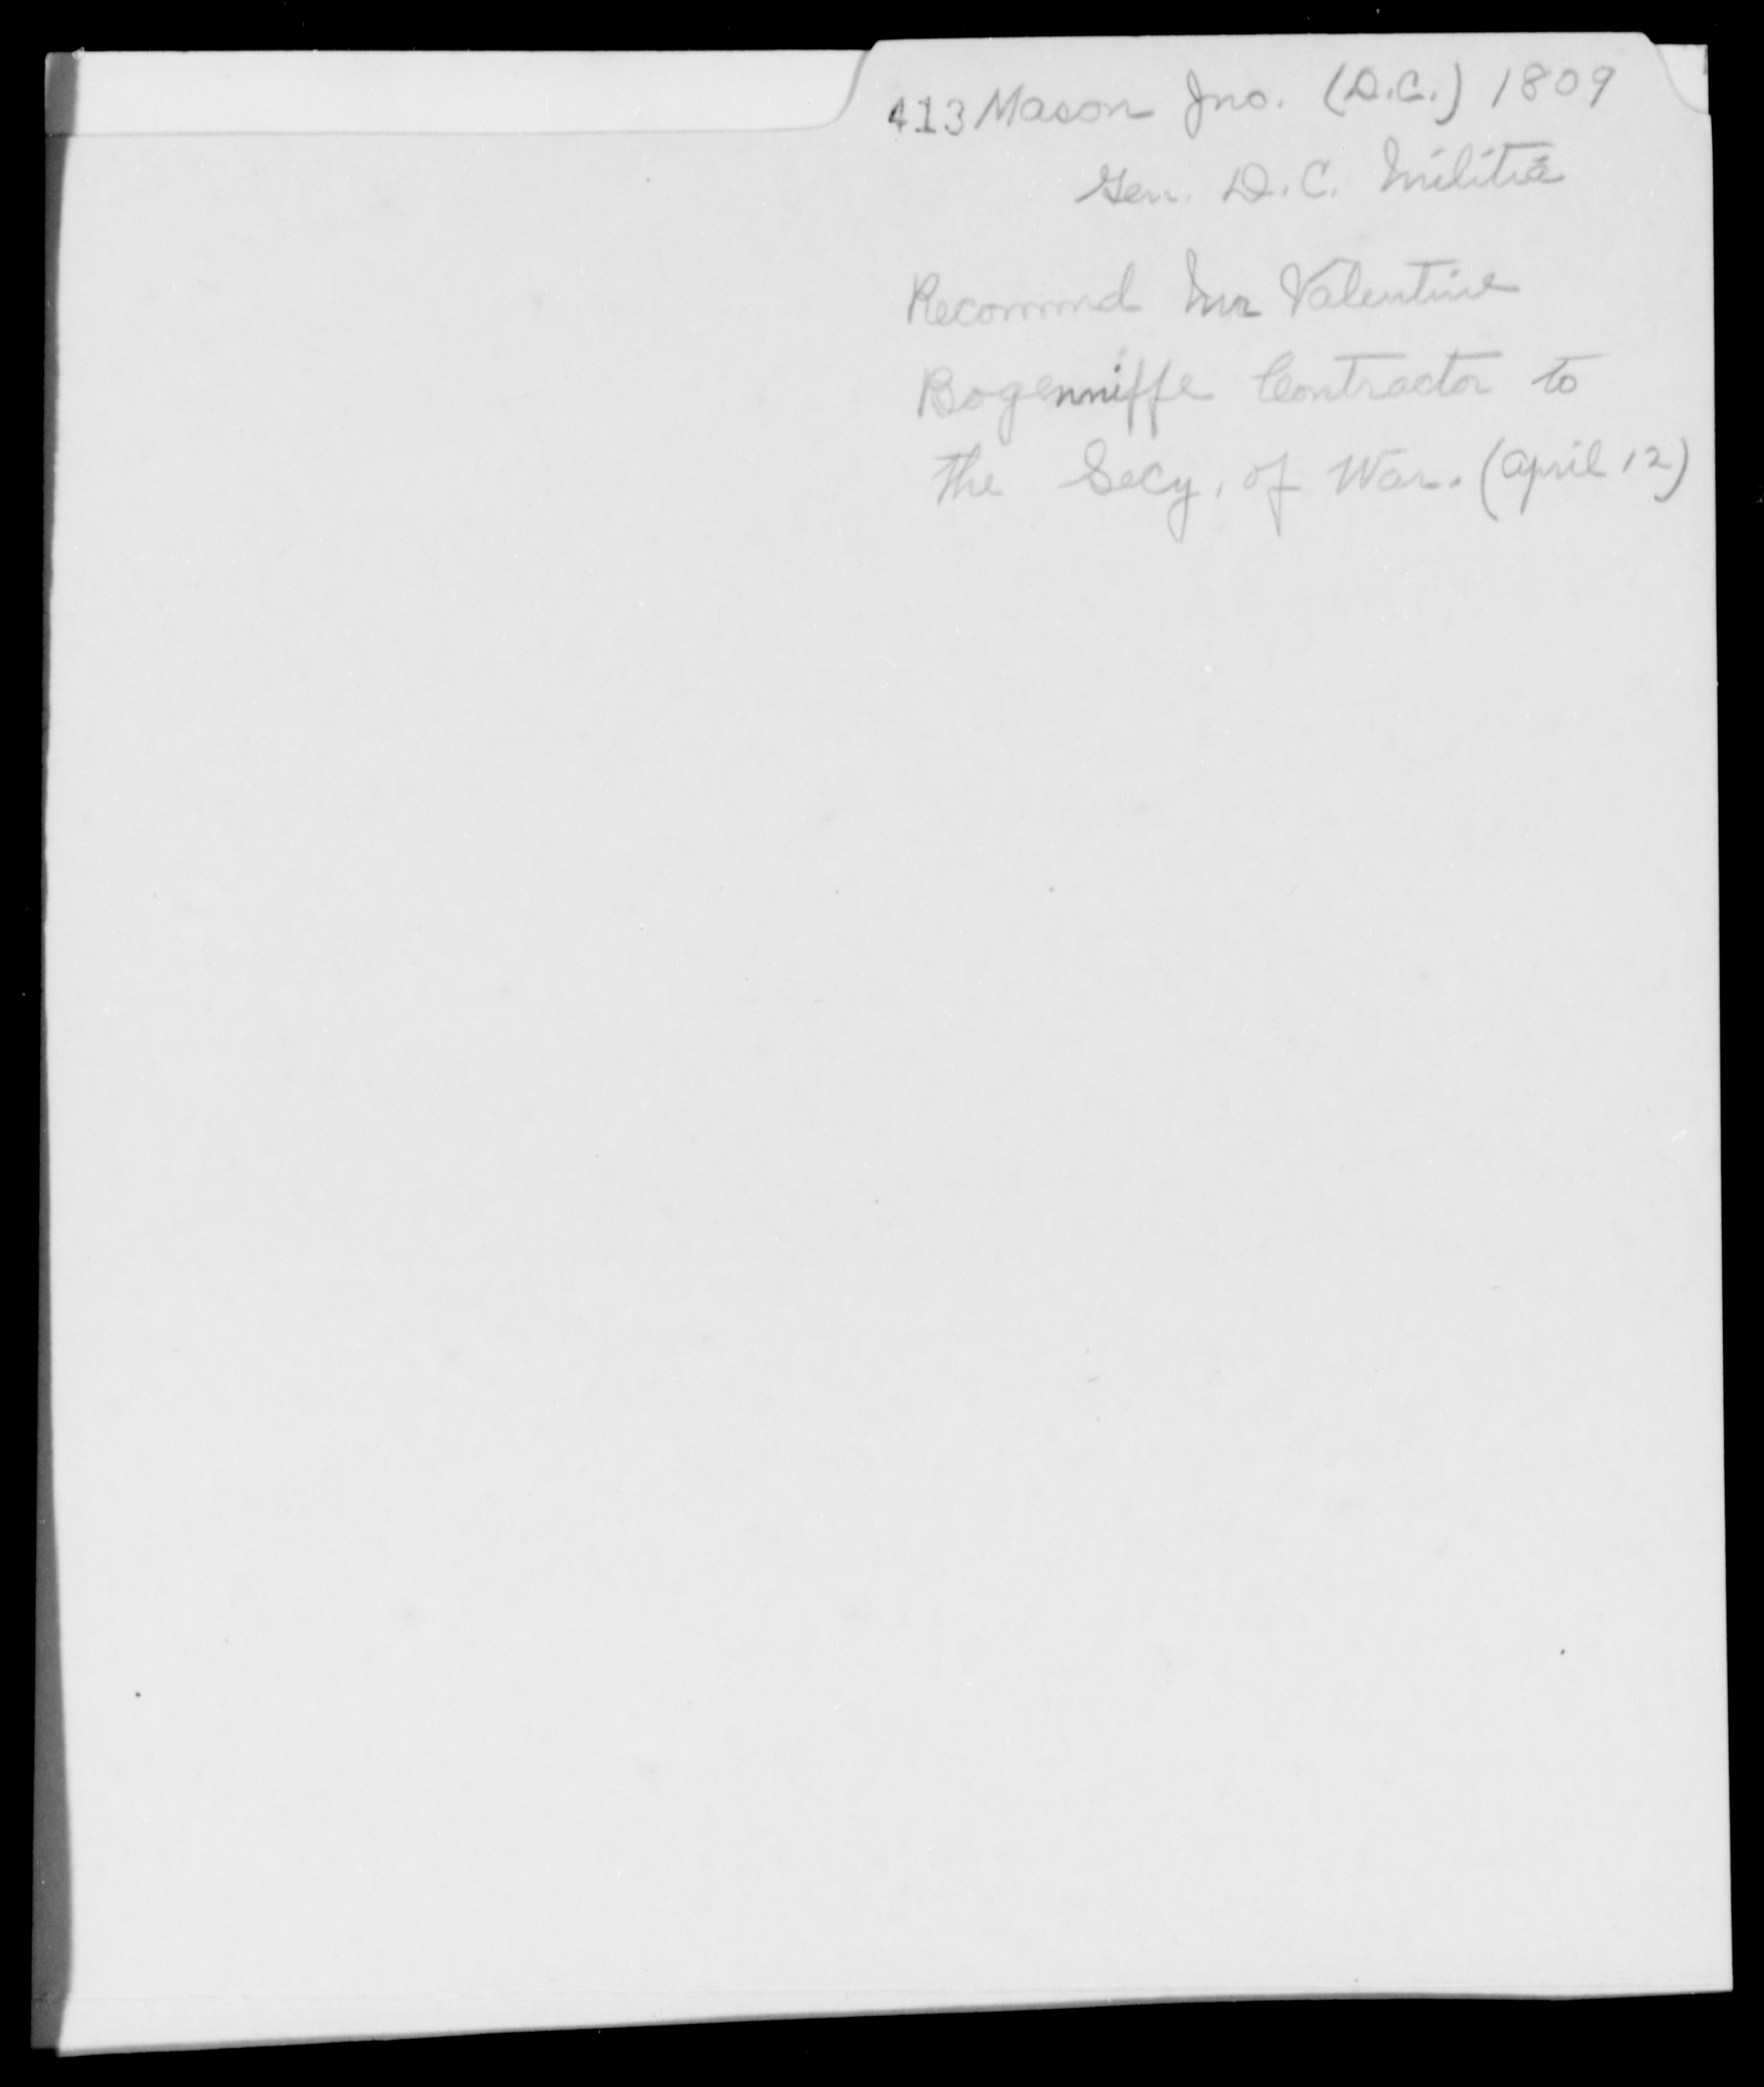 Mason, Jno - State: District of Columbia - Year: 1809 - Folder Number: 413